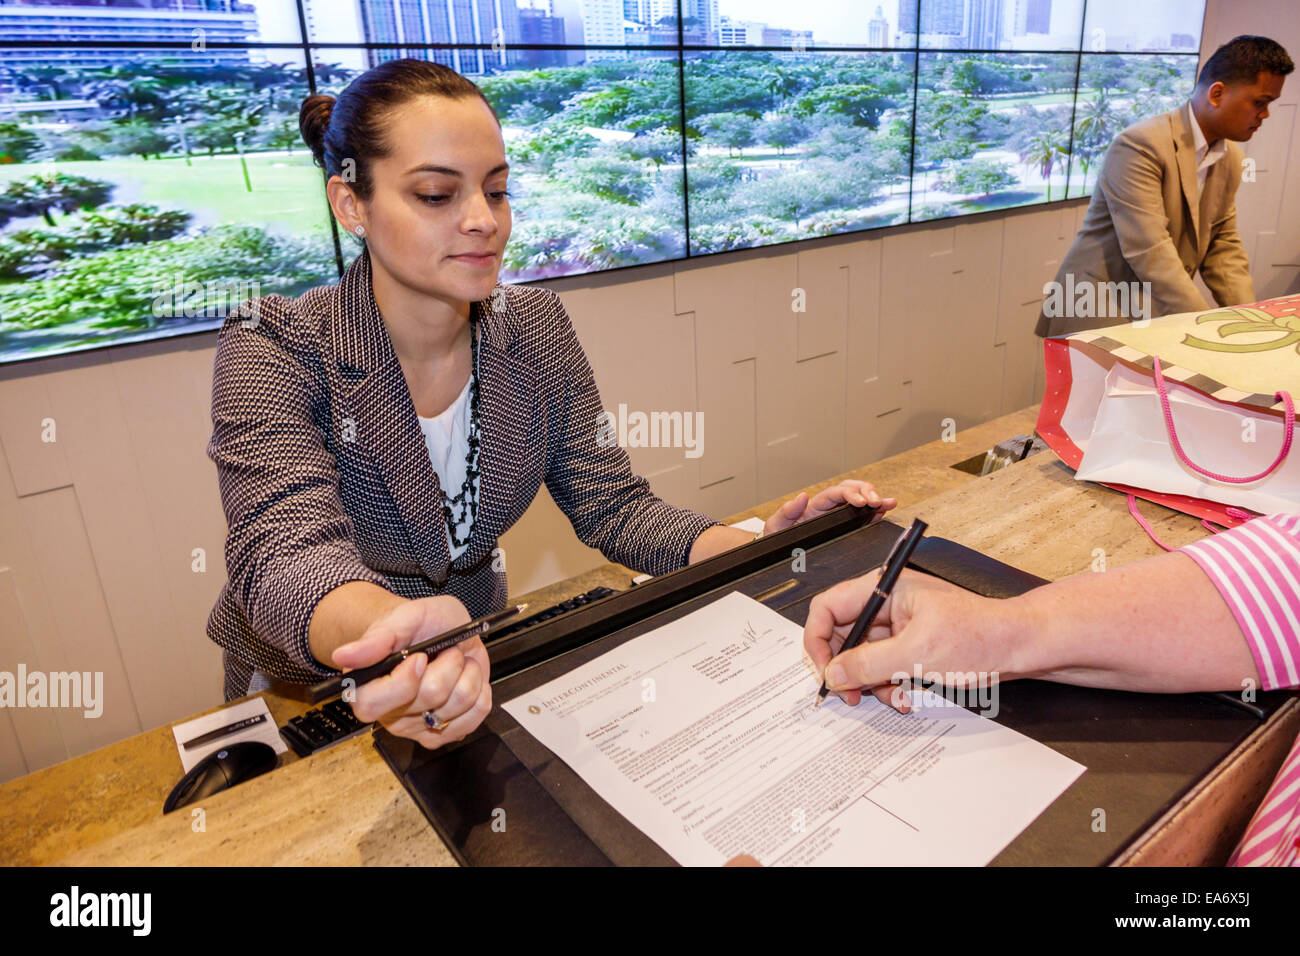 miami florida intercontinental hotel lobby front desk reservations rh alamy com medical front desk jobs in miami dental front desk jobs in miami